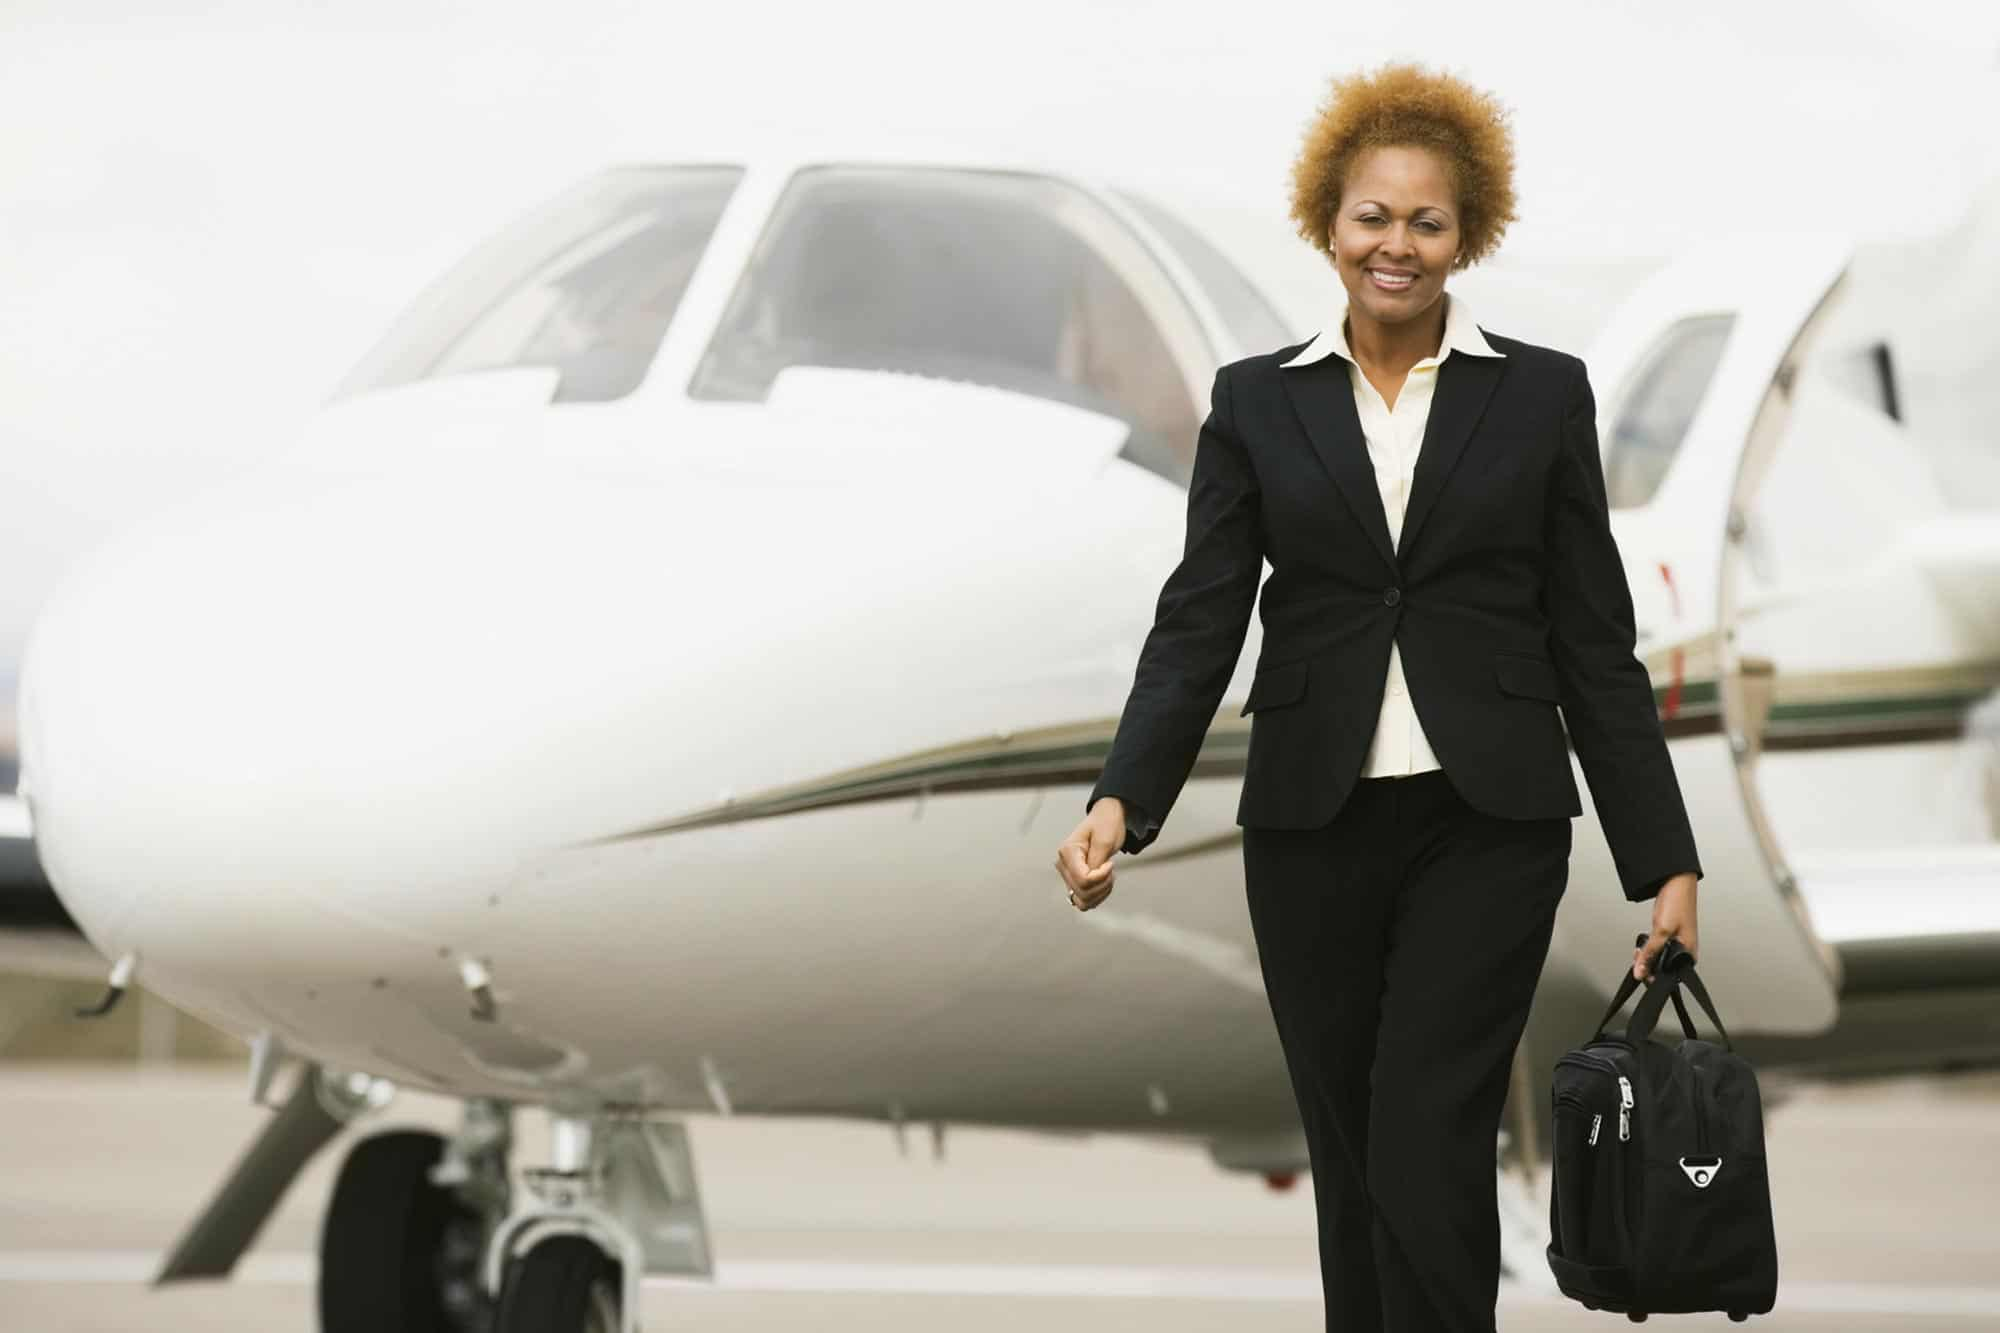 Lady next to private jet